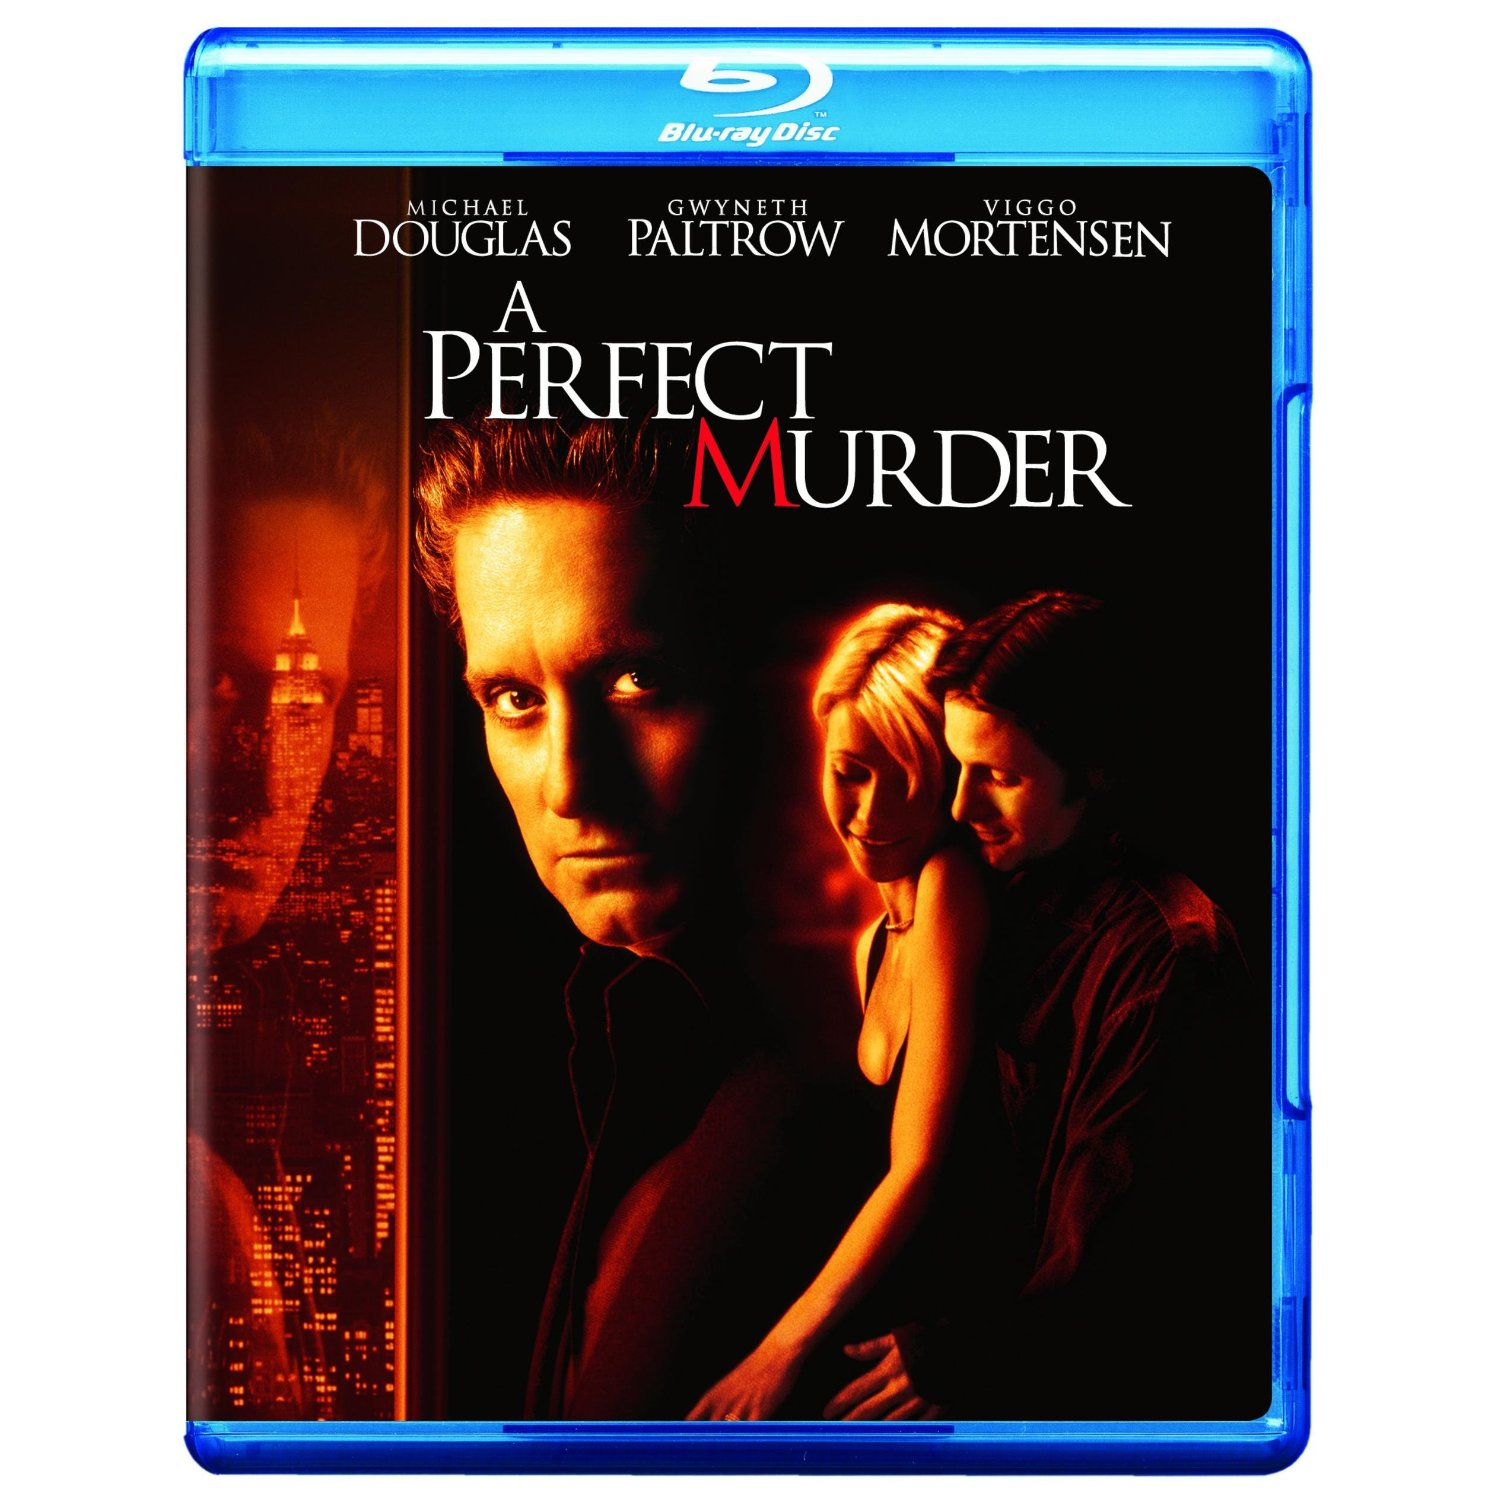 A Perfect Murder on Blu-ray